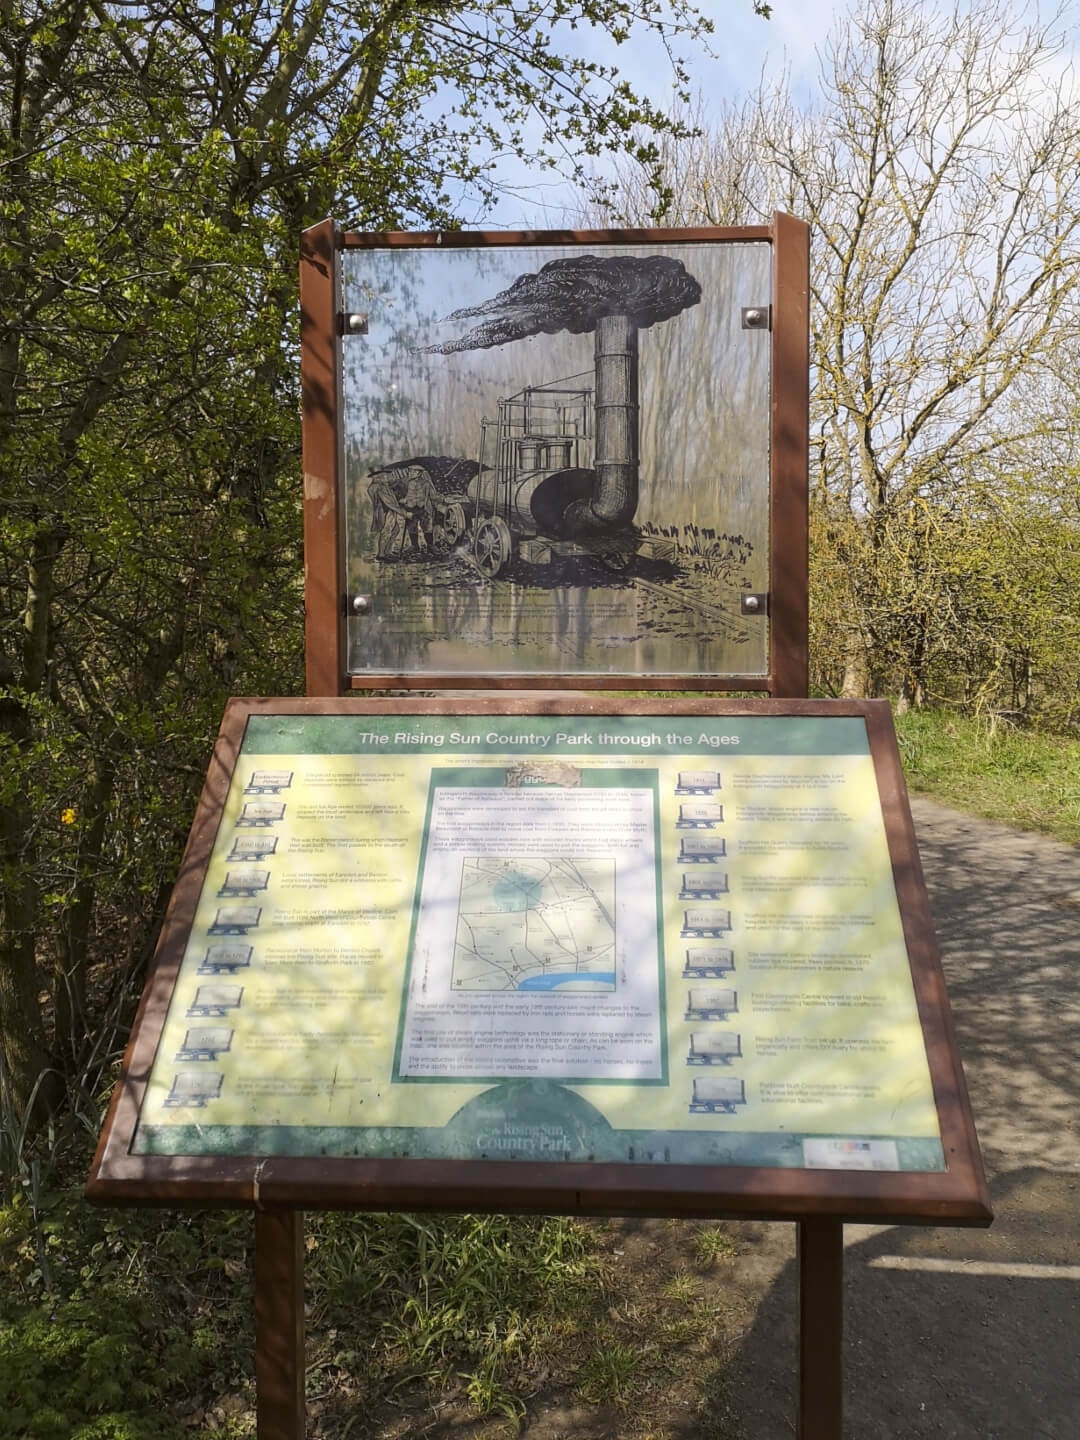 Waggonways path at the Rising Sun park, an information board showing the steam trains that were tested here.